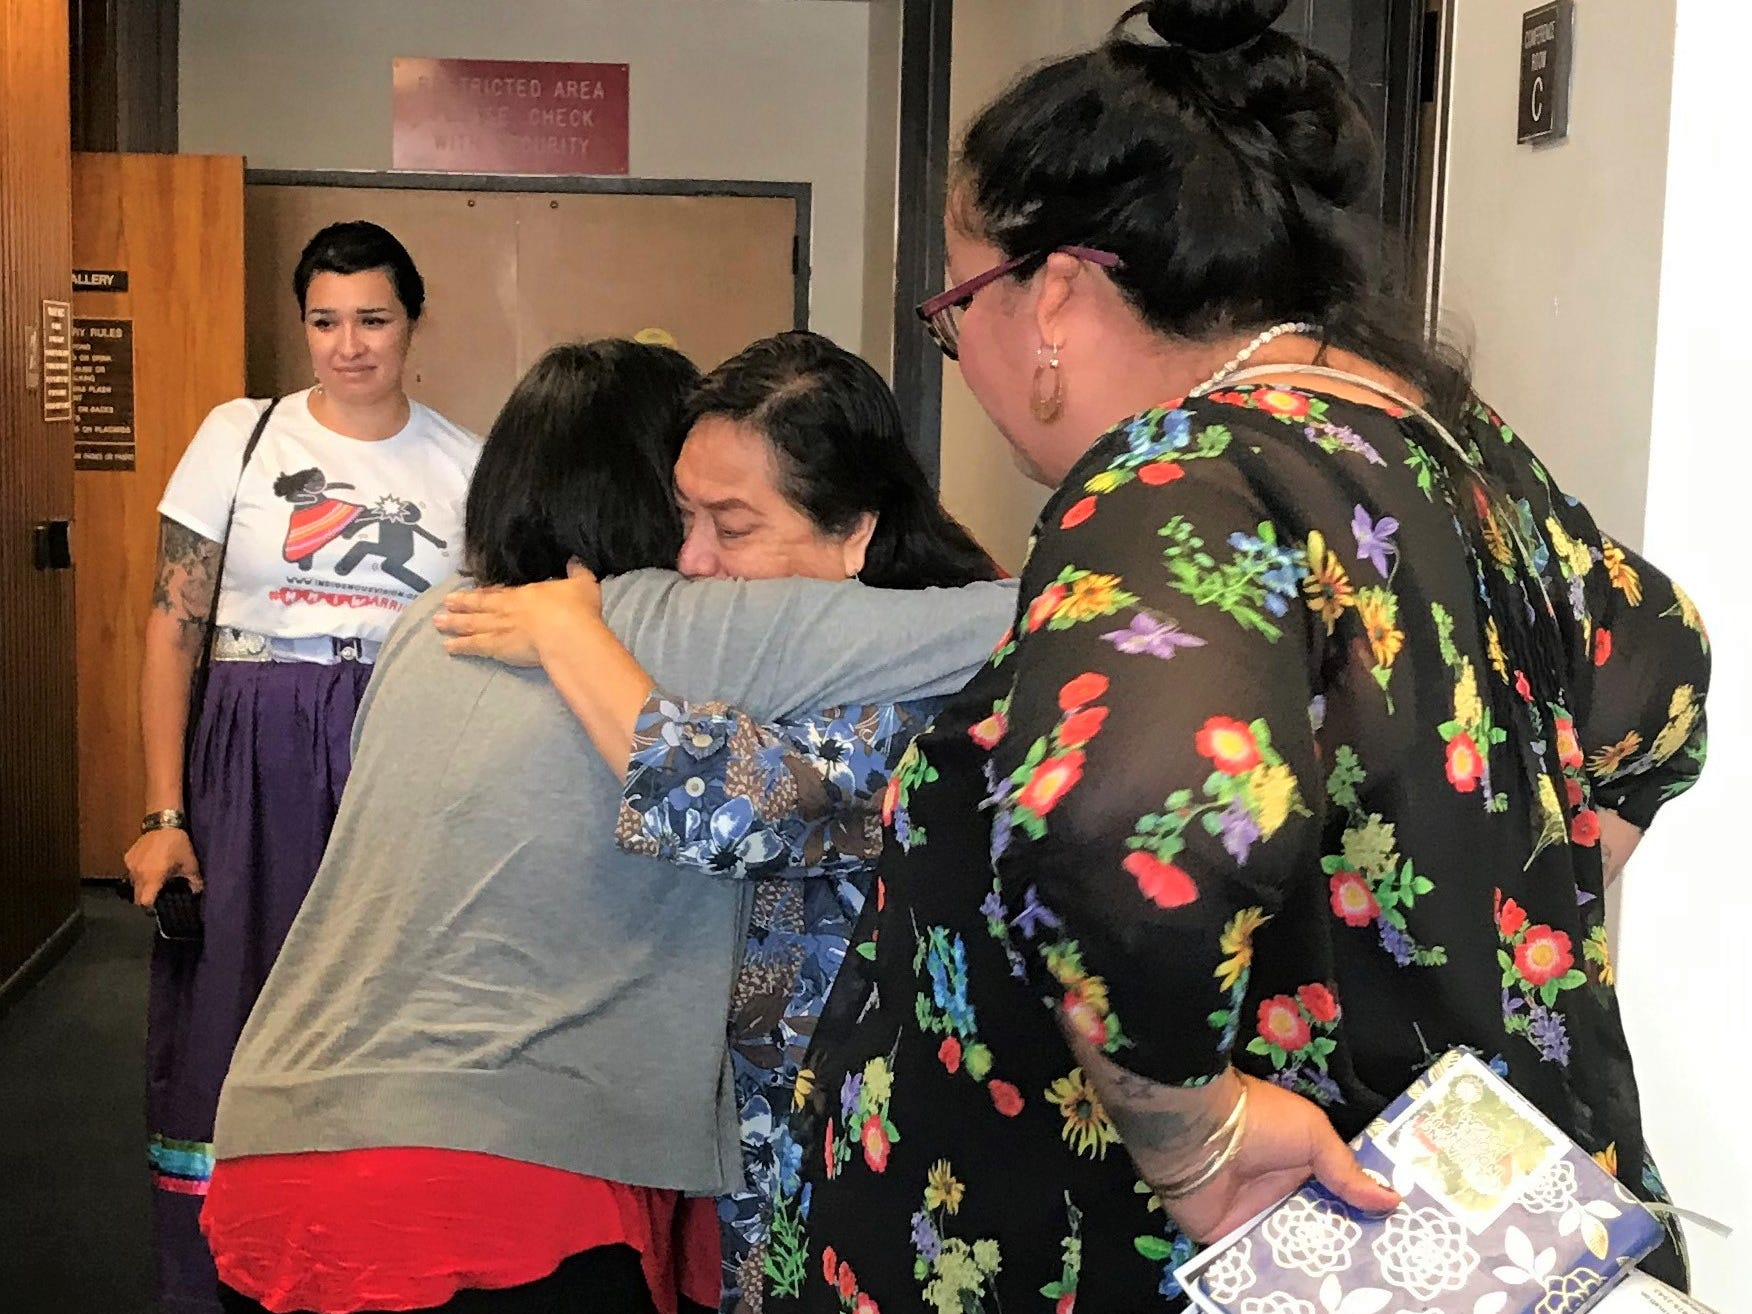 Supporters of House Bill 2570 hug outside the viewing gallery on May 2, 2019. The bill passed the Arizona Senate with a vote of 28 ayes, 0 nayes and 2 not voting.